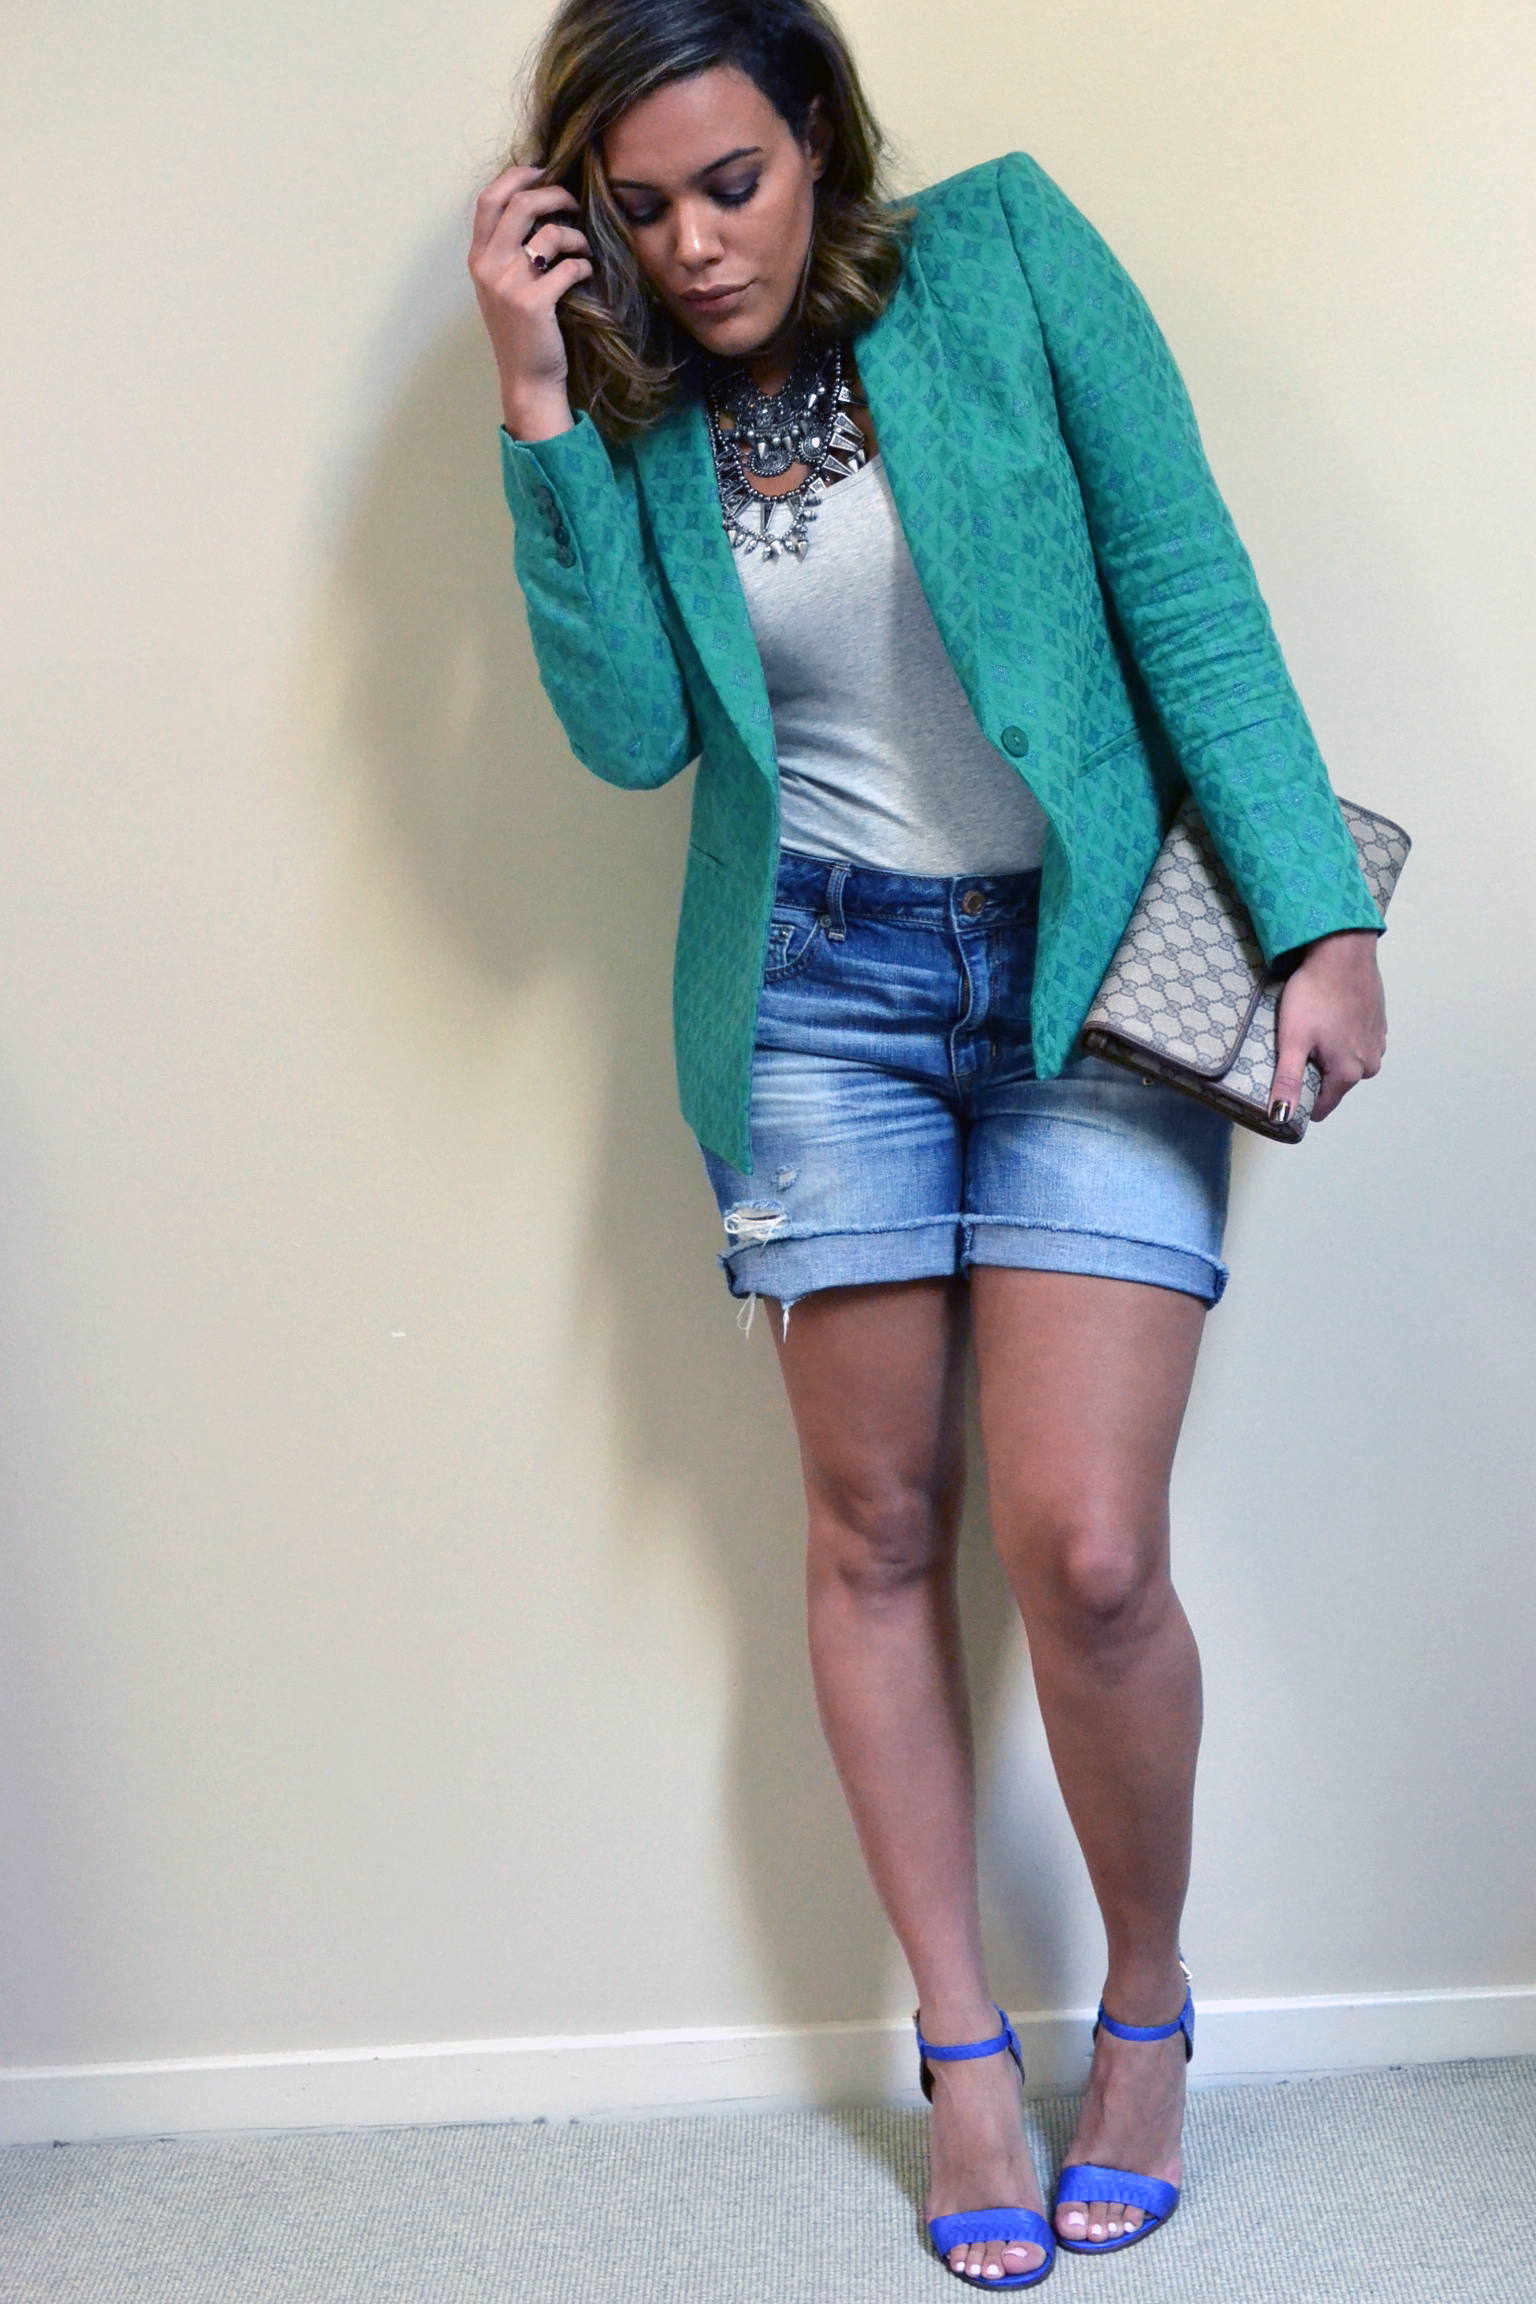 how-to-summer-to-fall-fashion-zara-boyfriend-blazer-vintage-gucci-clutch-distressed-jean-shorts-30-days-of-style.jpg